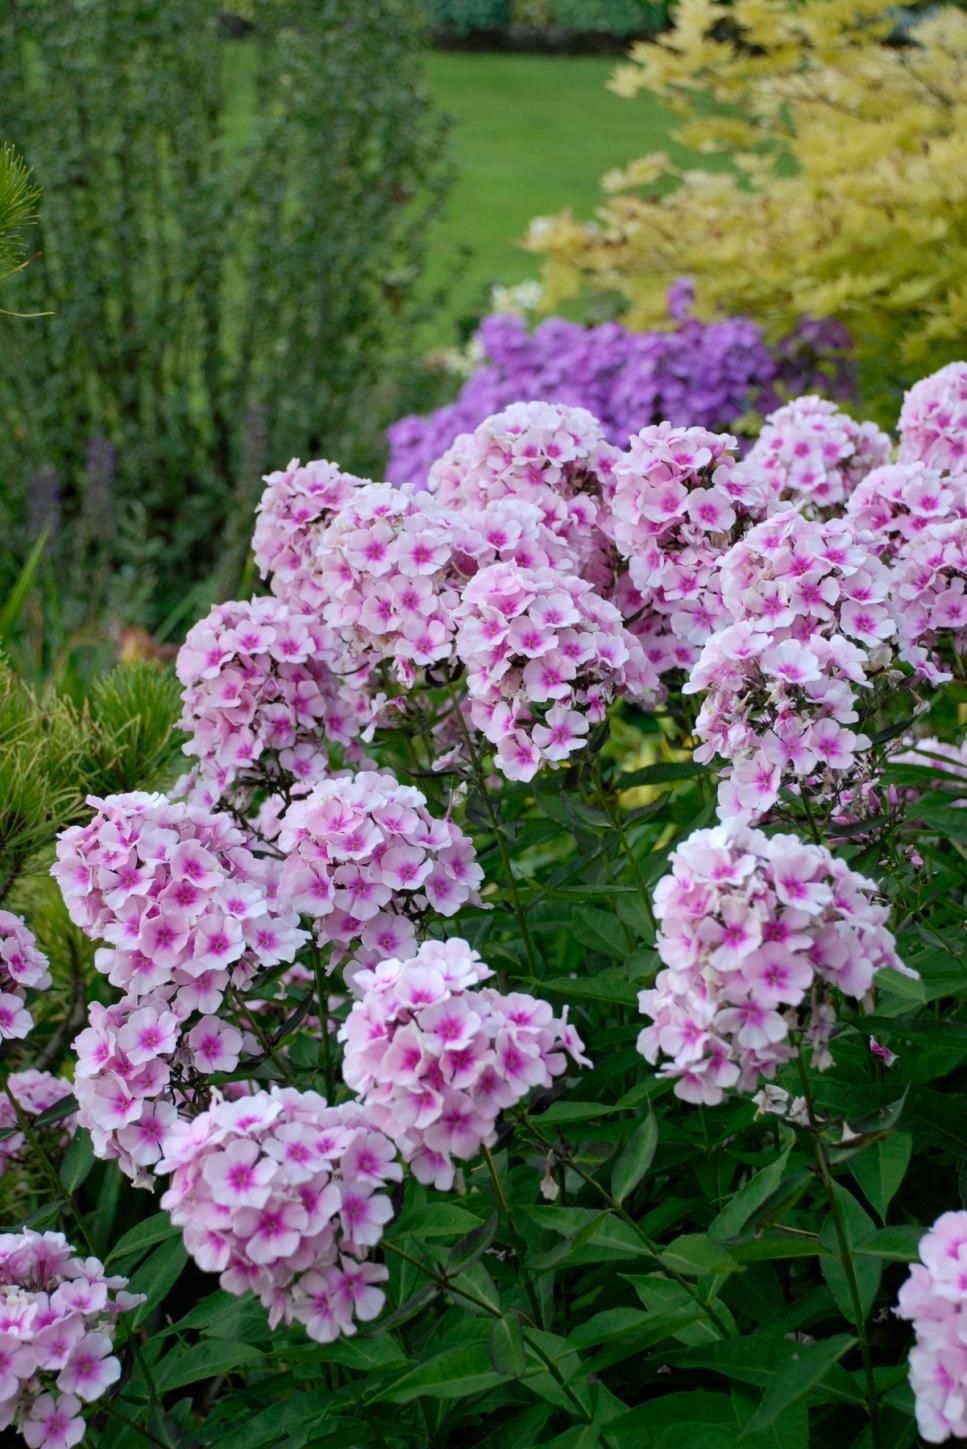 Flowers that like sun and moist soil - Perennials That Need Infrequent Dividing